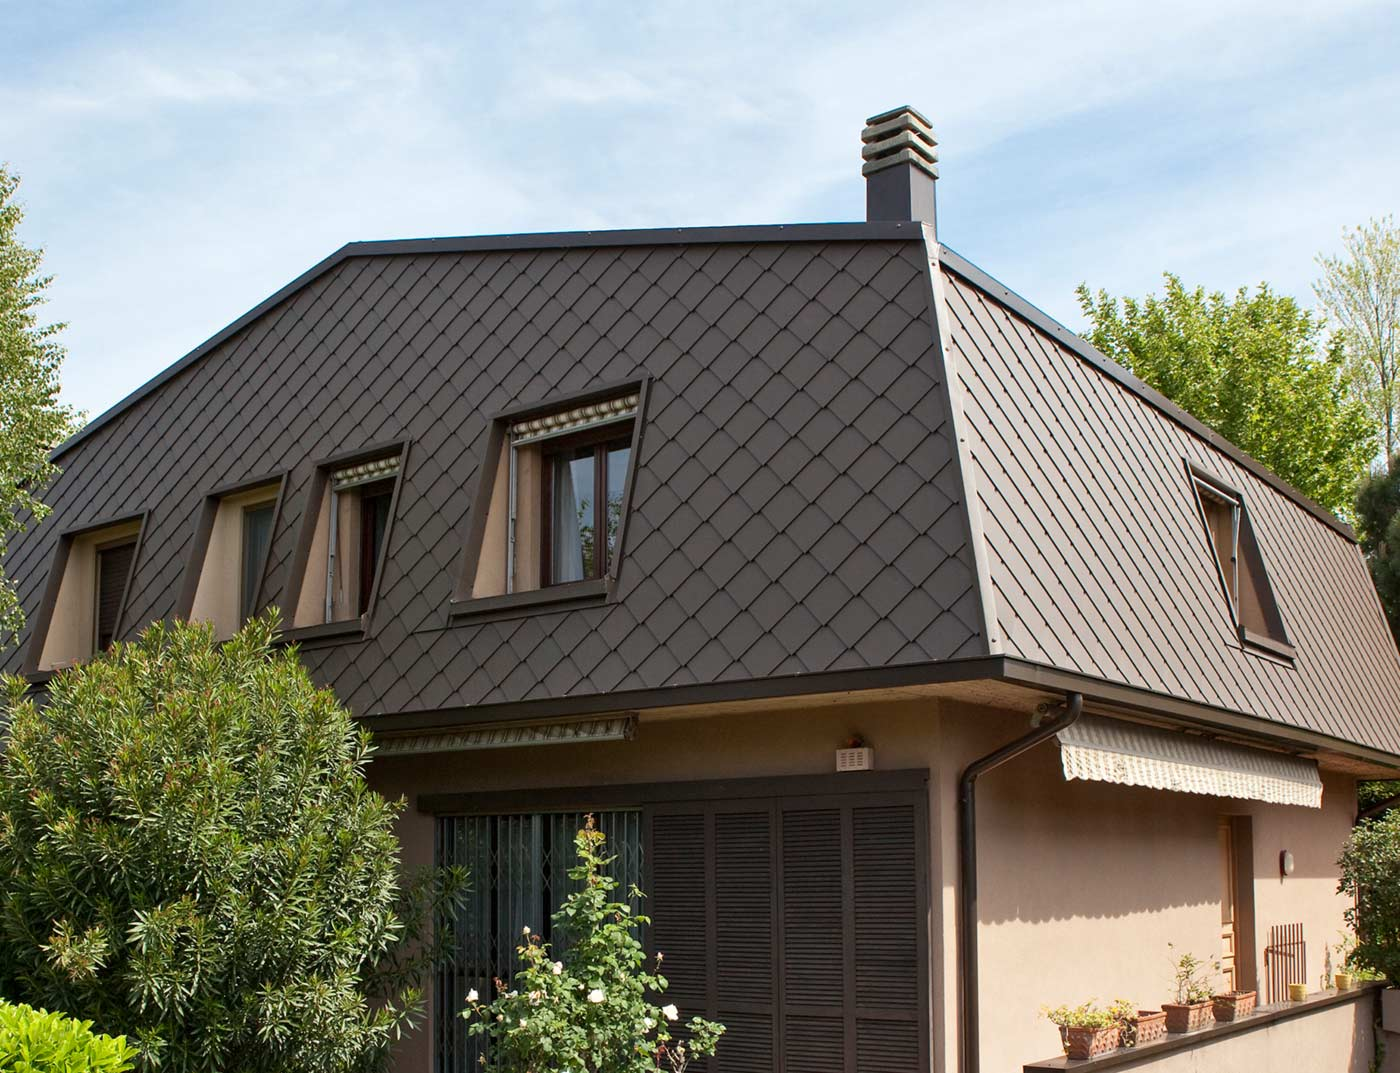 Mansard roof covered with PREFA 29 × 29 rhomboid wall tiles in brown. The upper part of the building was clad with a combination of horizontal larch wood panels and PREFA Siding.X aluminium panels in anthracite.